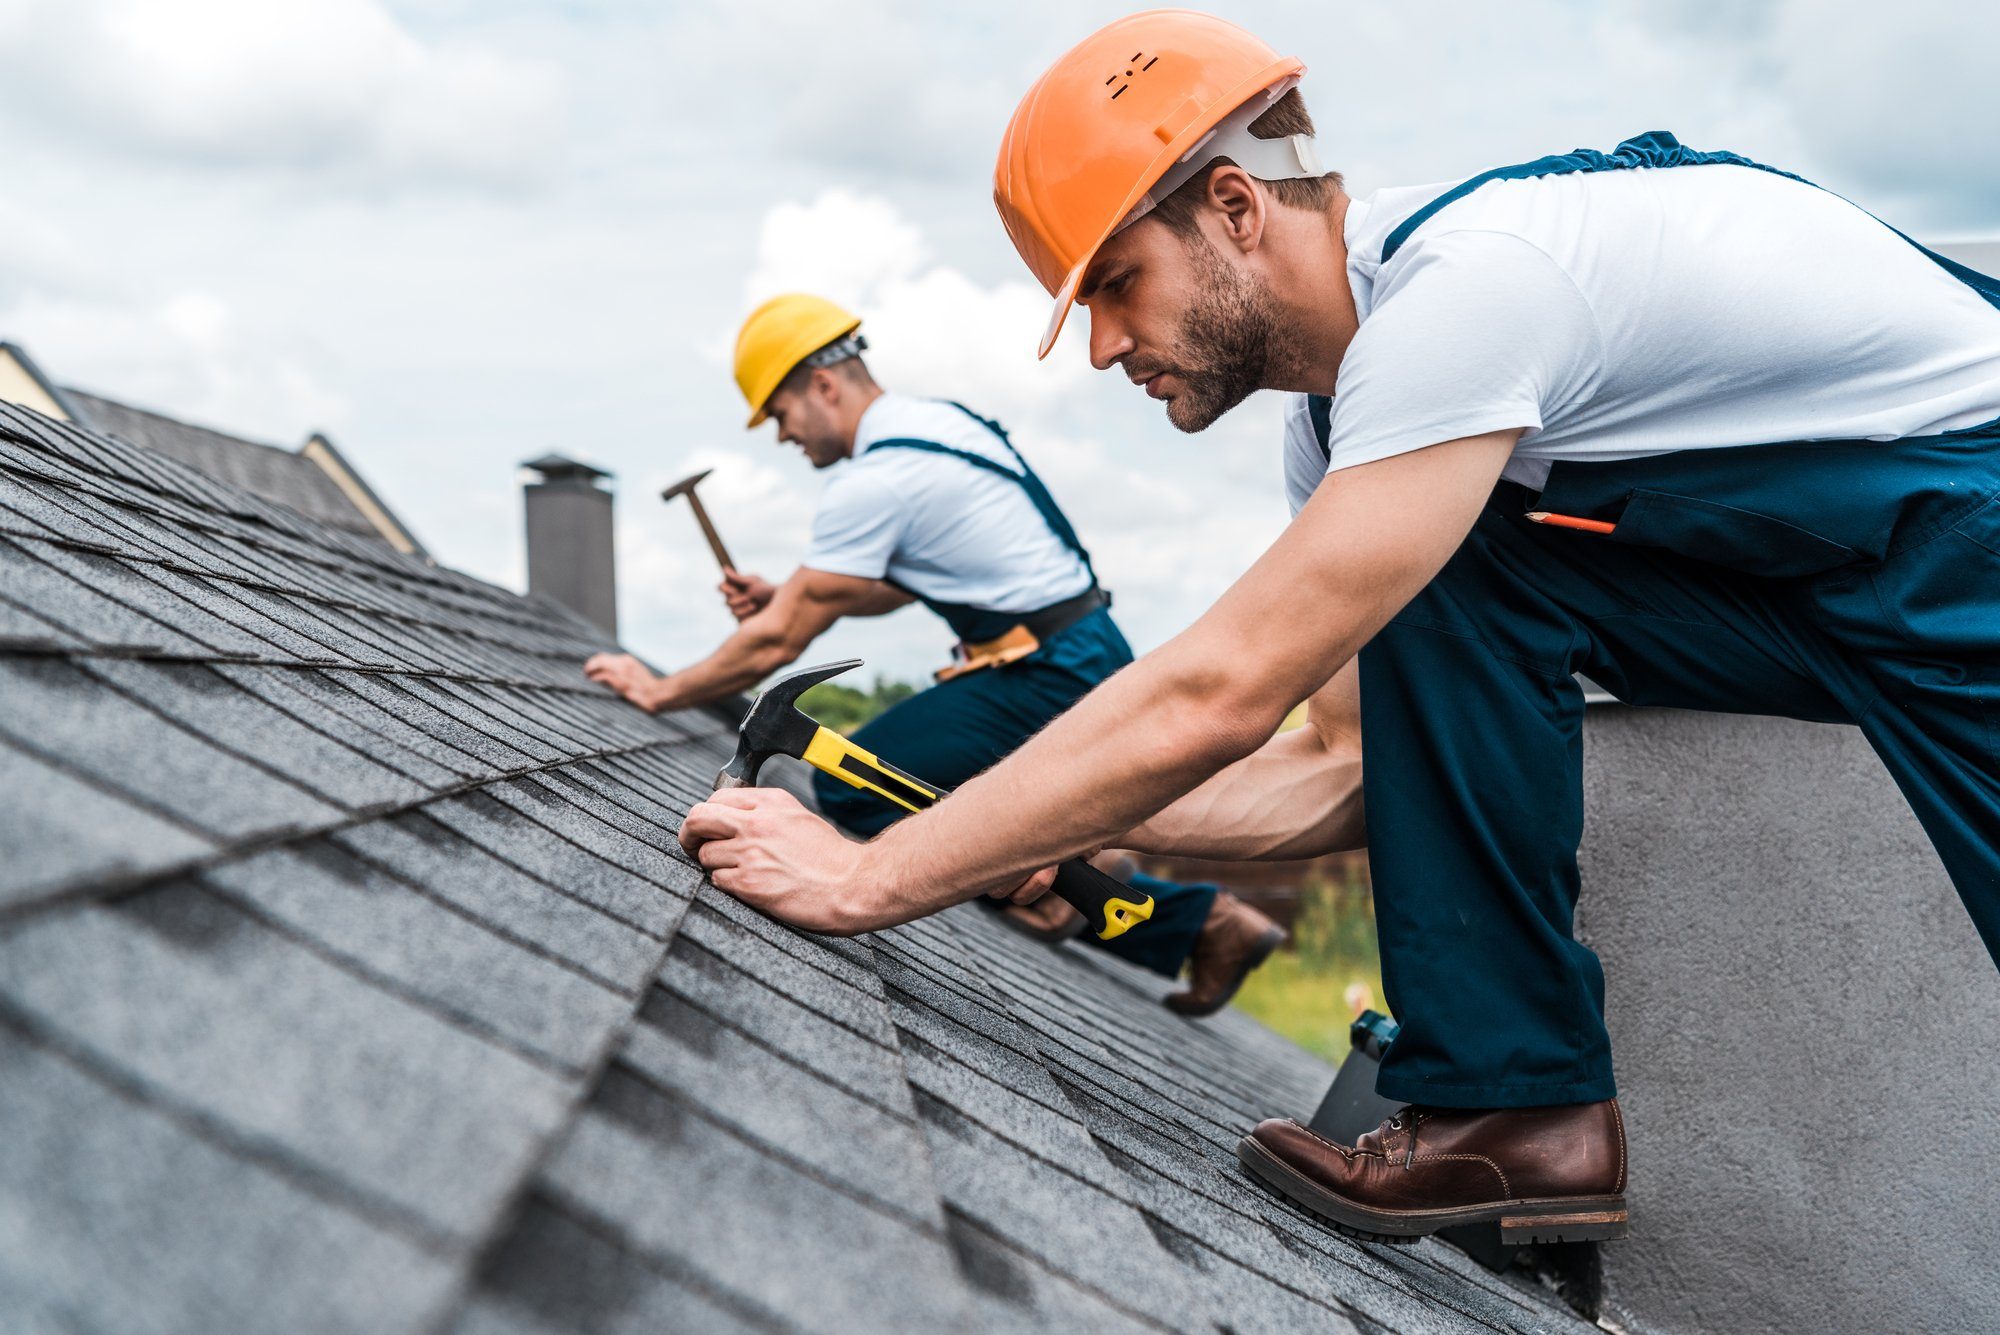 Finding Quality Roof Repair Contractors in Cedar Rapids IA